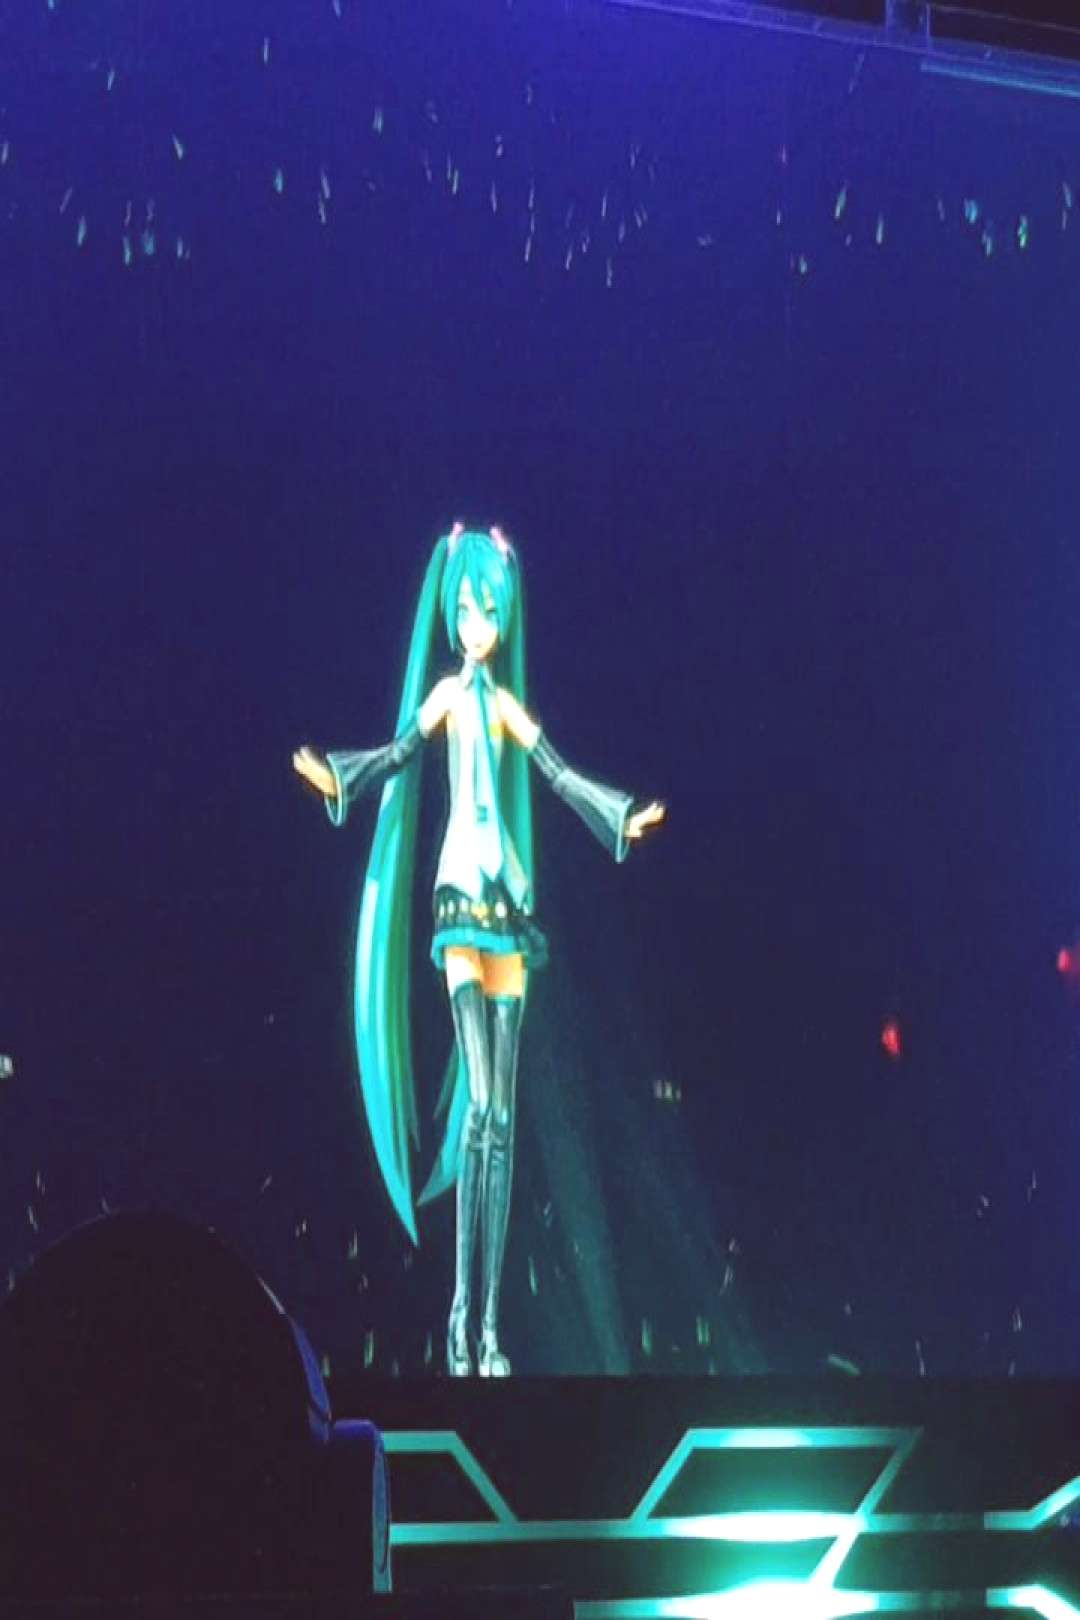 Thinking about MIKU EXPO London - Decade was amazing to see live!